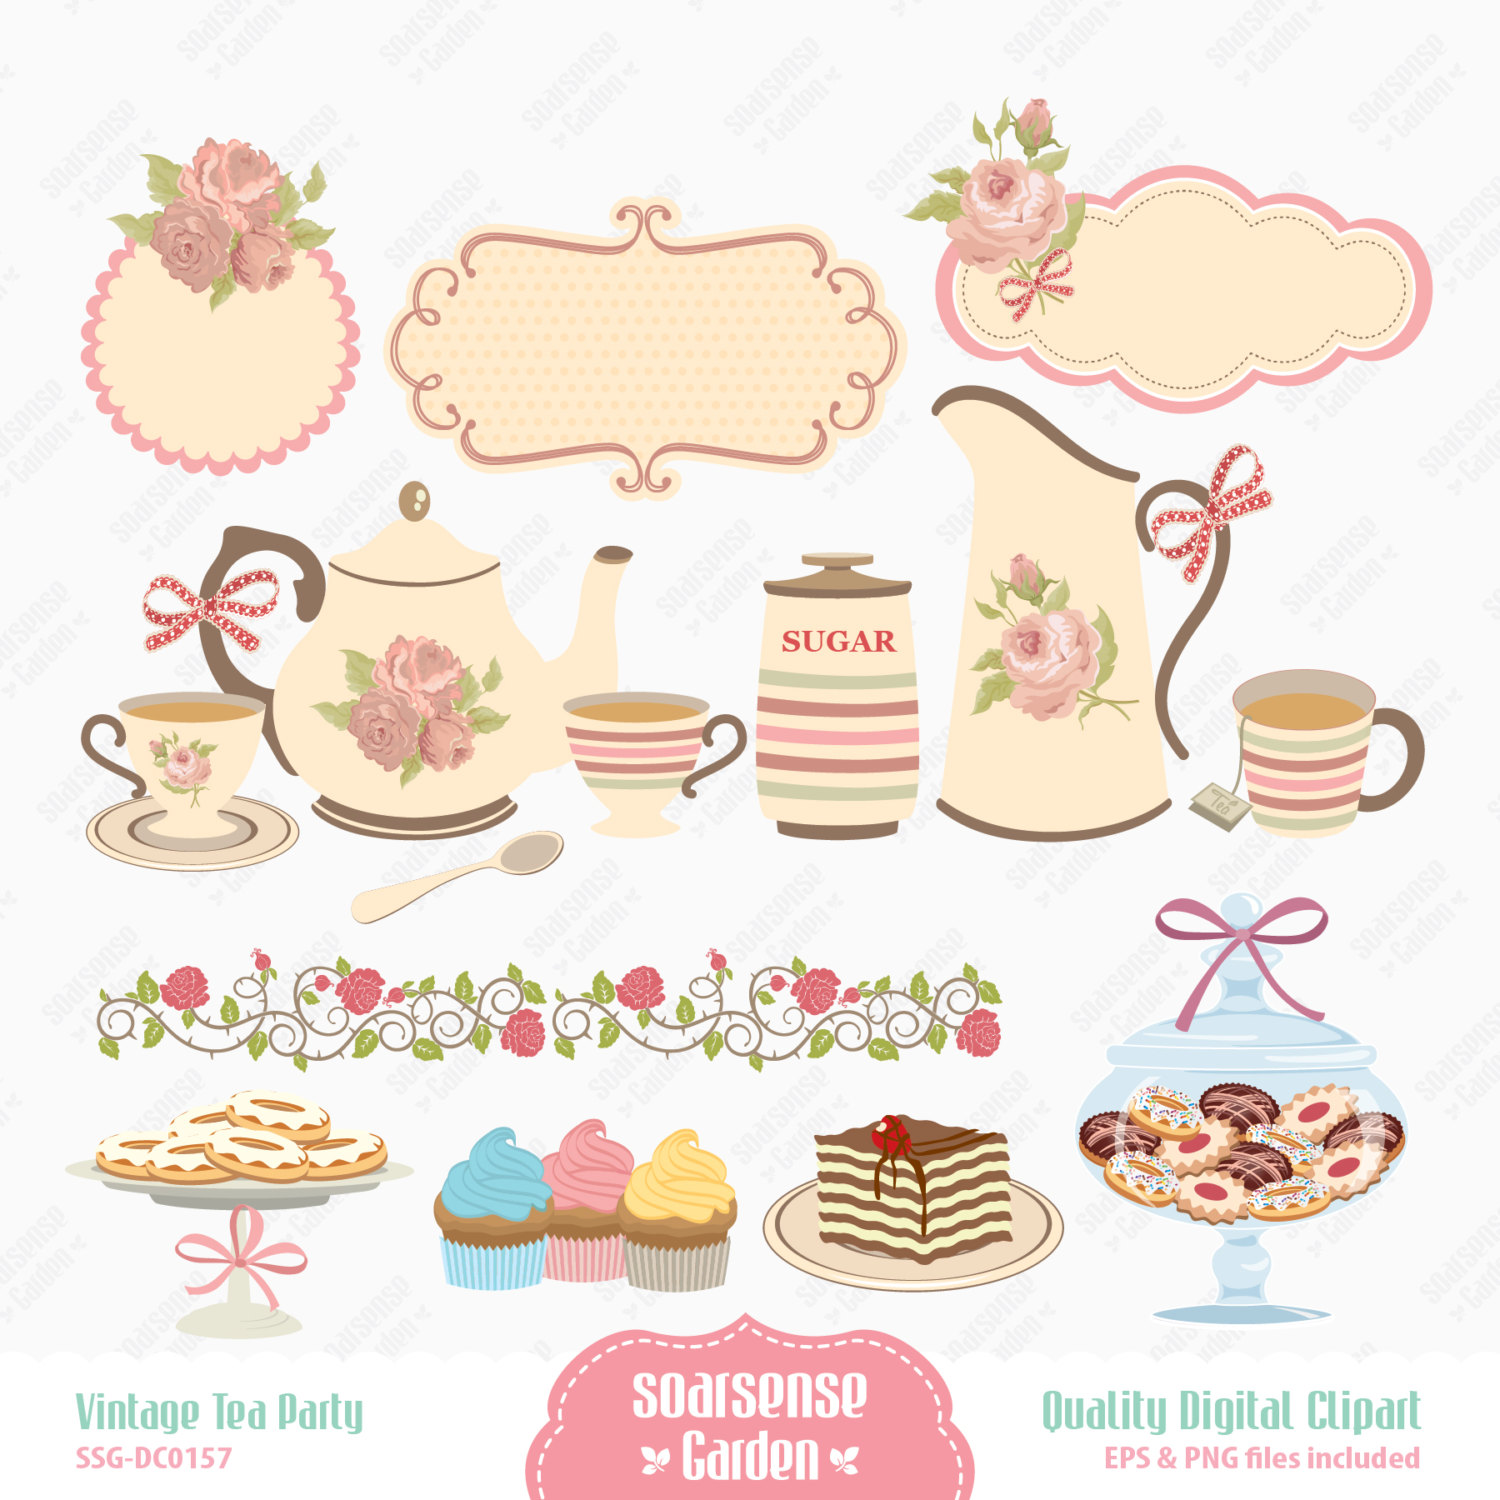 vintage afternoon tea clipart 14 - Afternoon Tea Party PNG